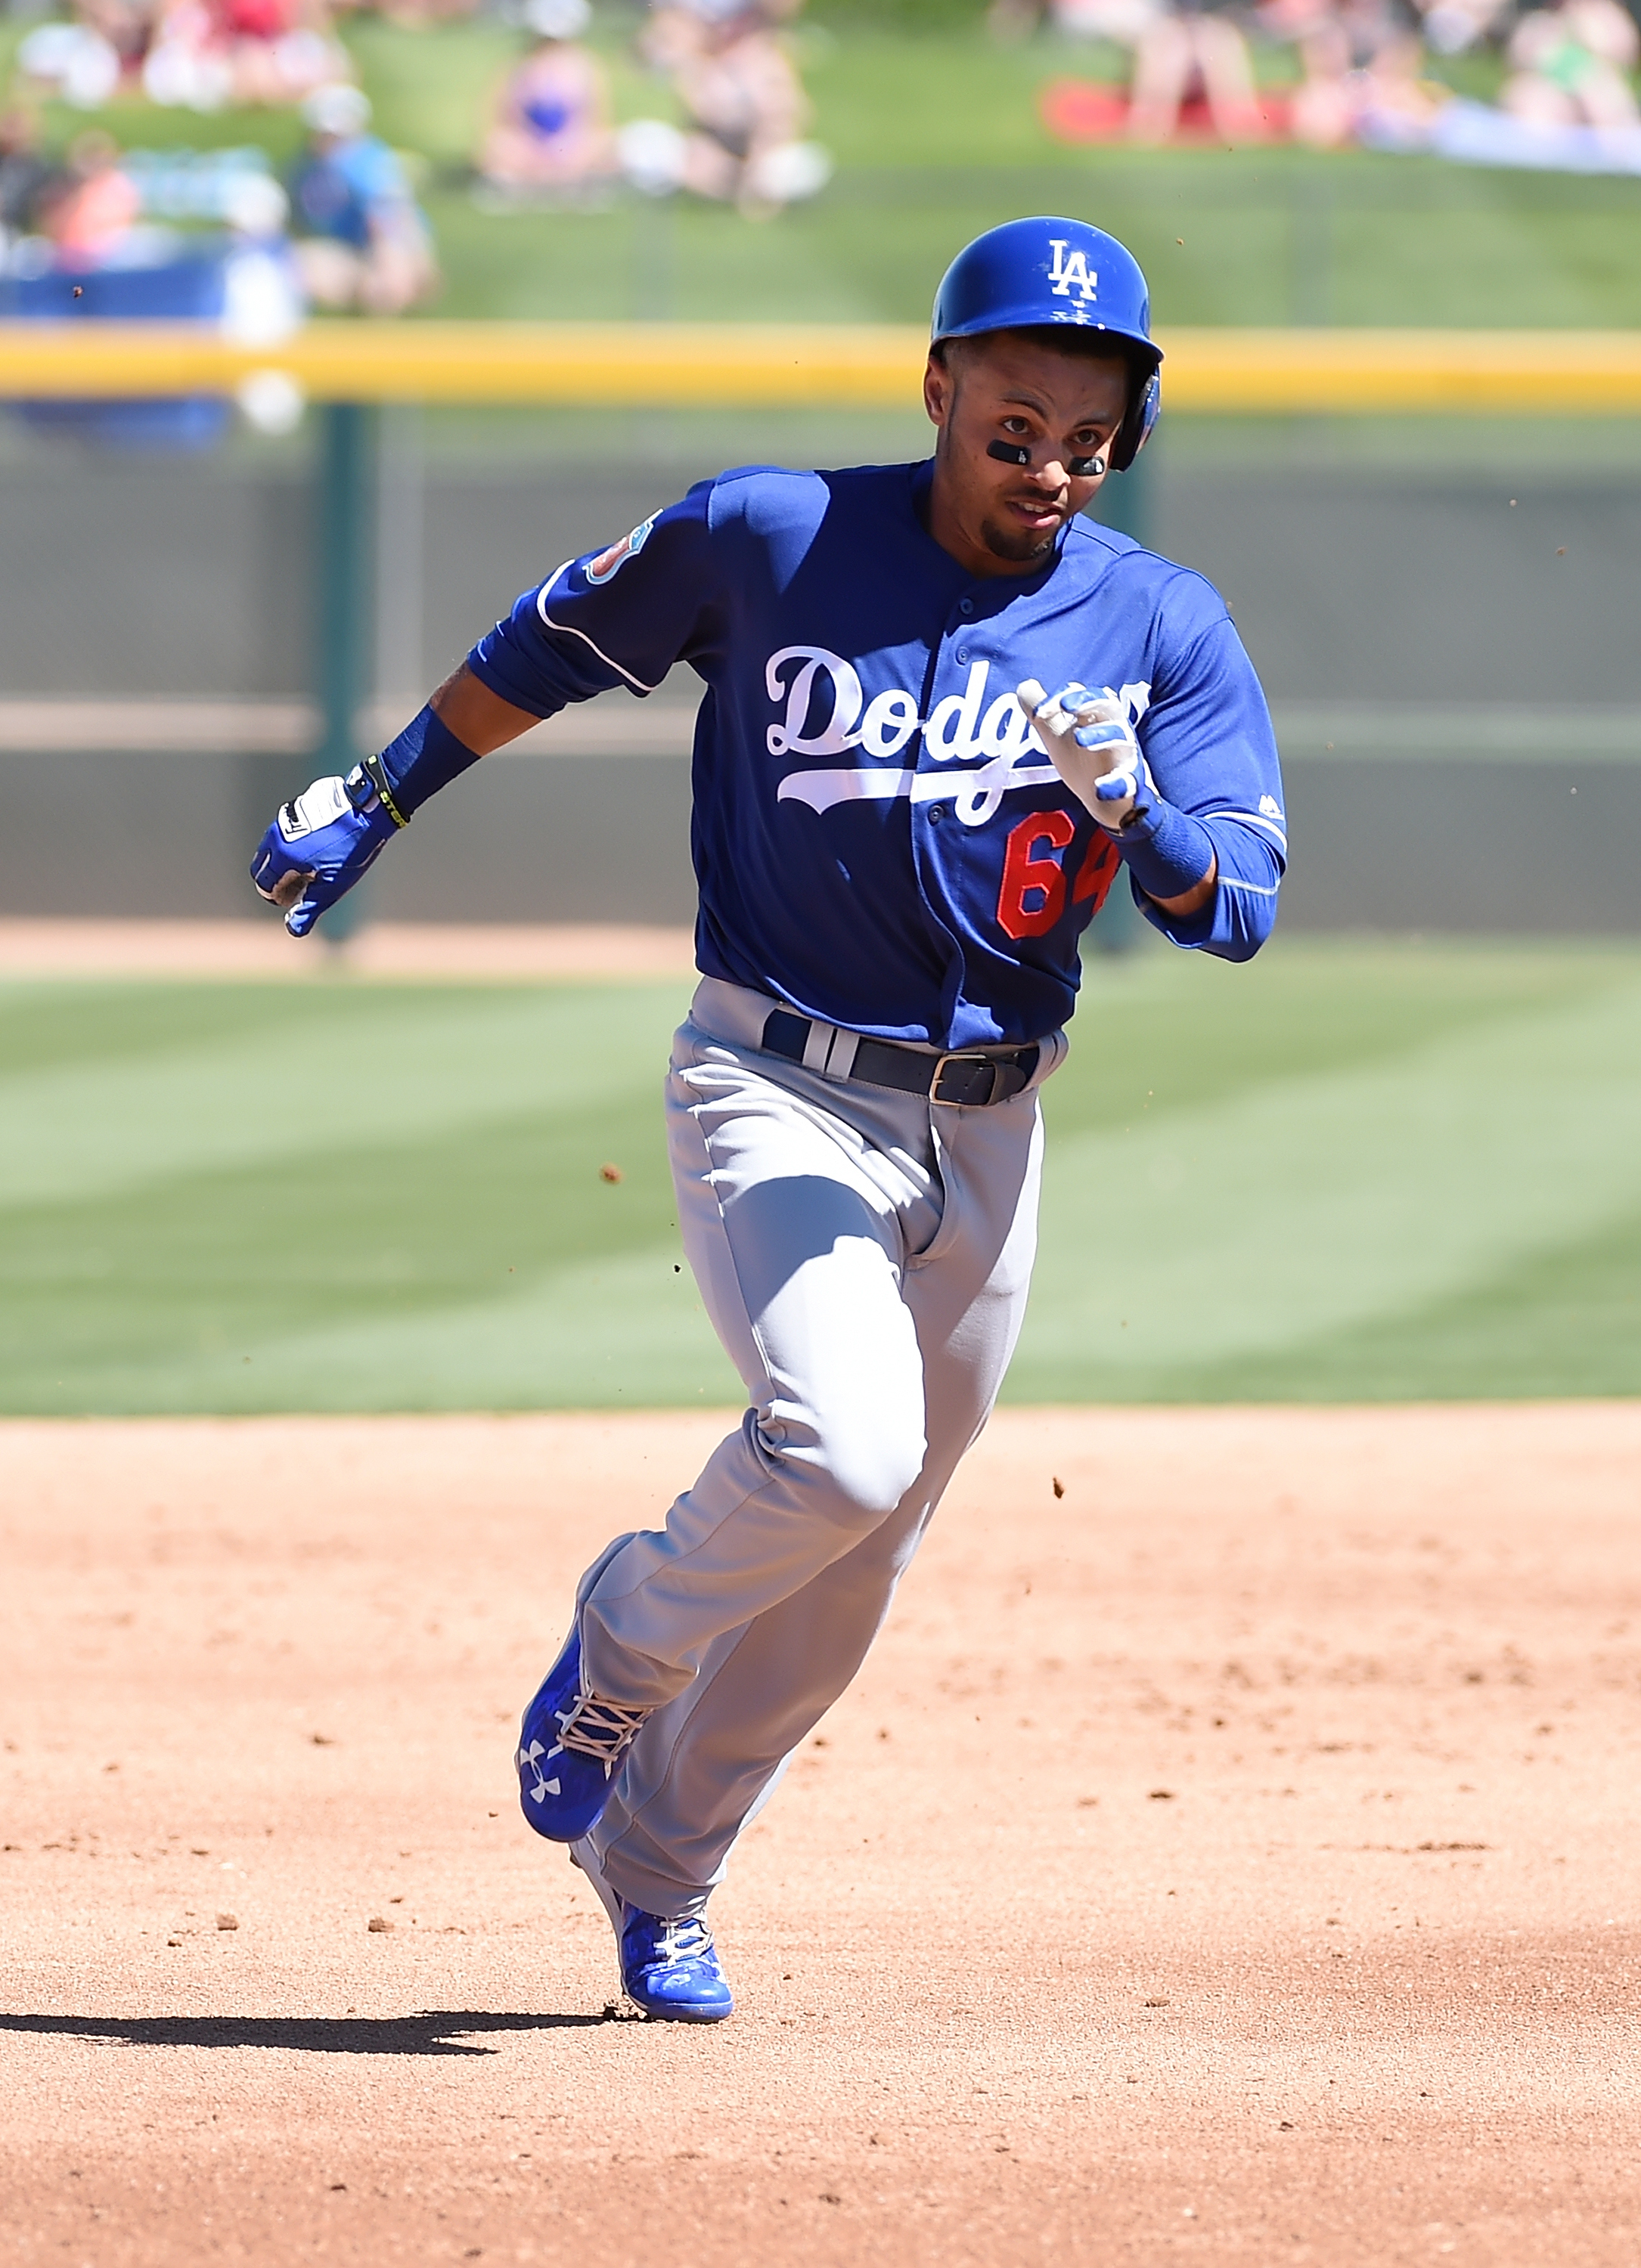 Rico Noel won't be joining the Dodgers for the Freeway Series.